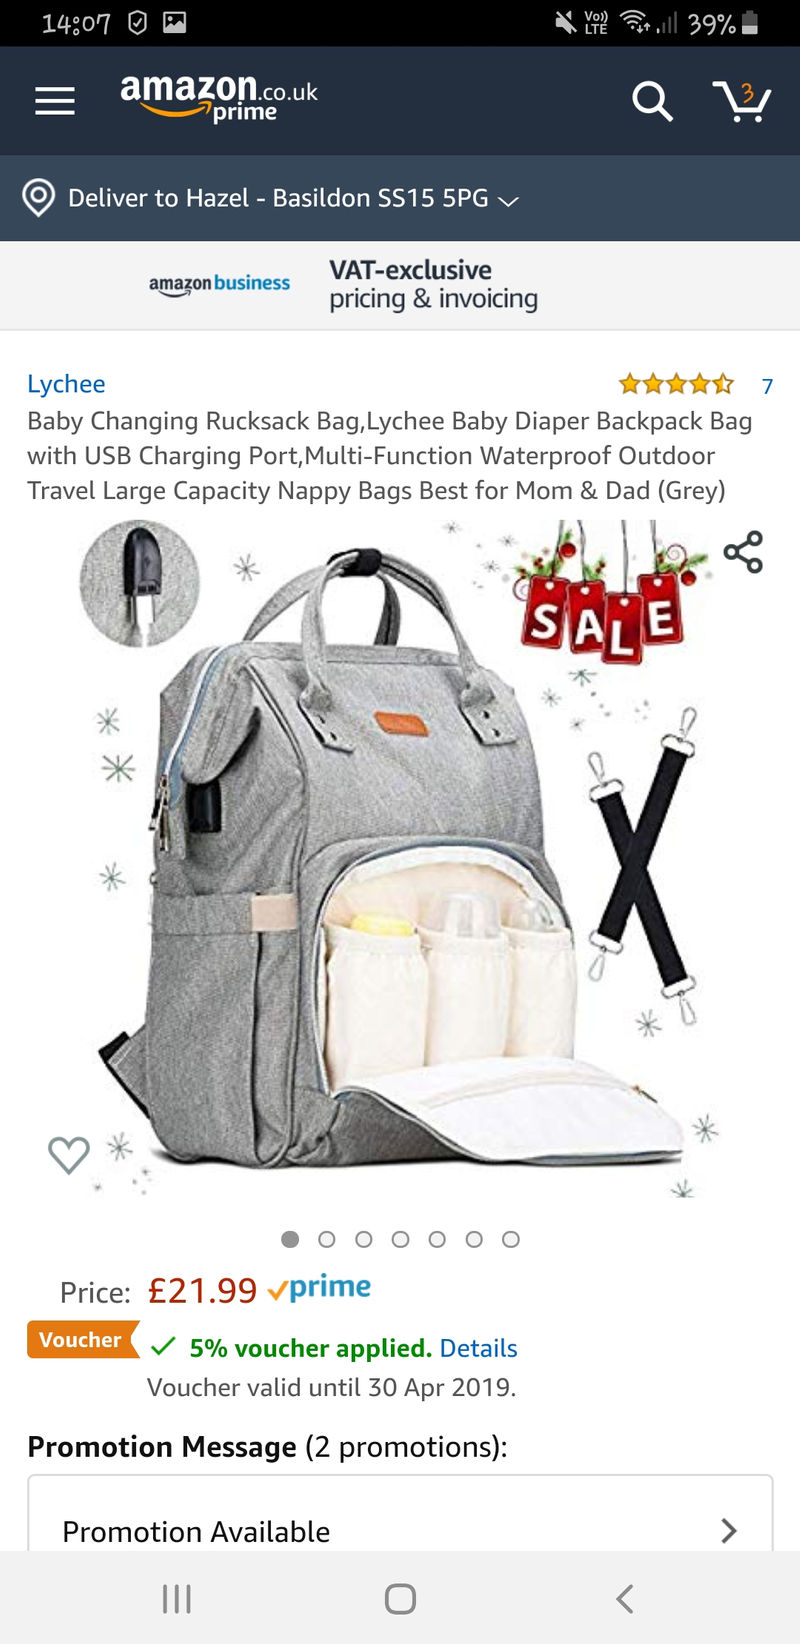 Baby Changing Rucksack Bag,Lychee Diaper Backpack Bag with USB Grey